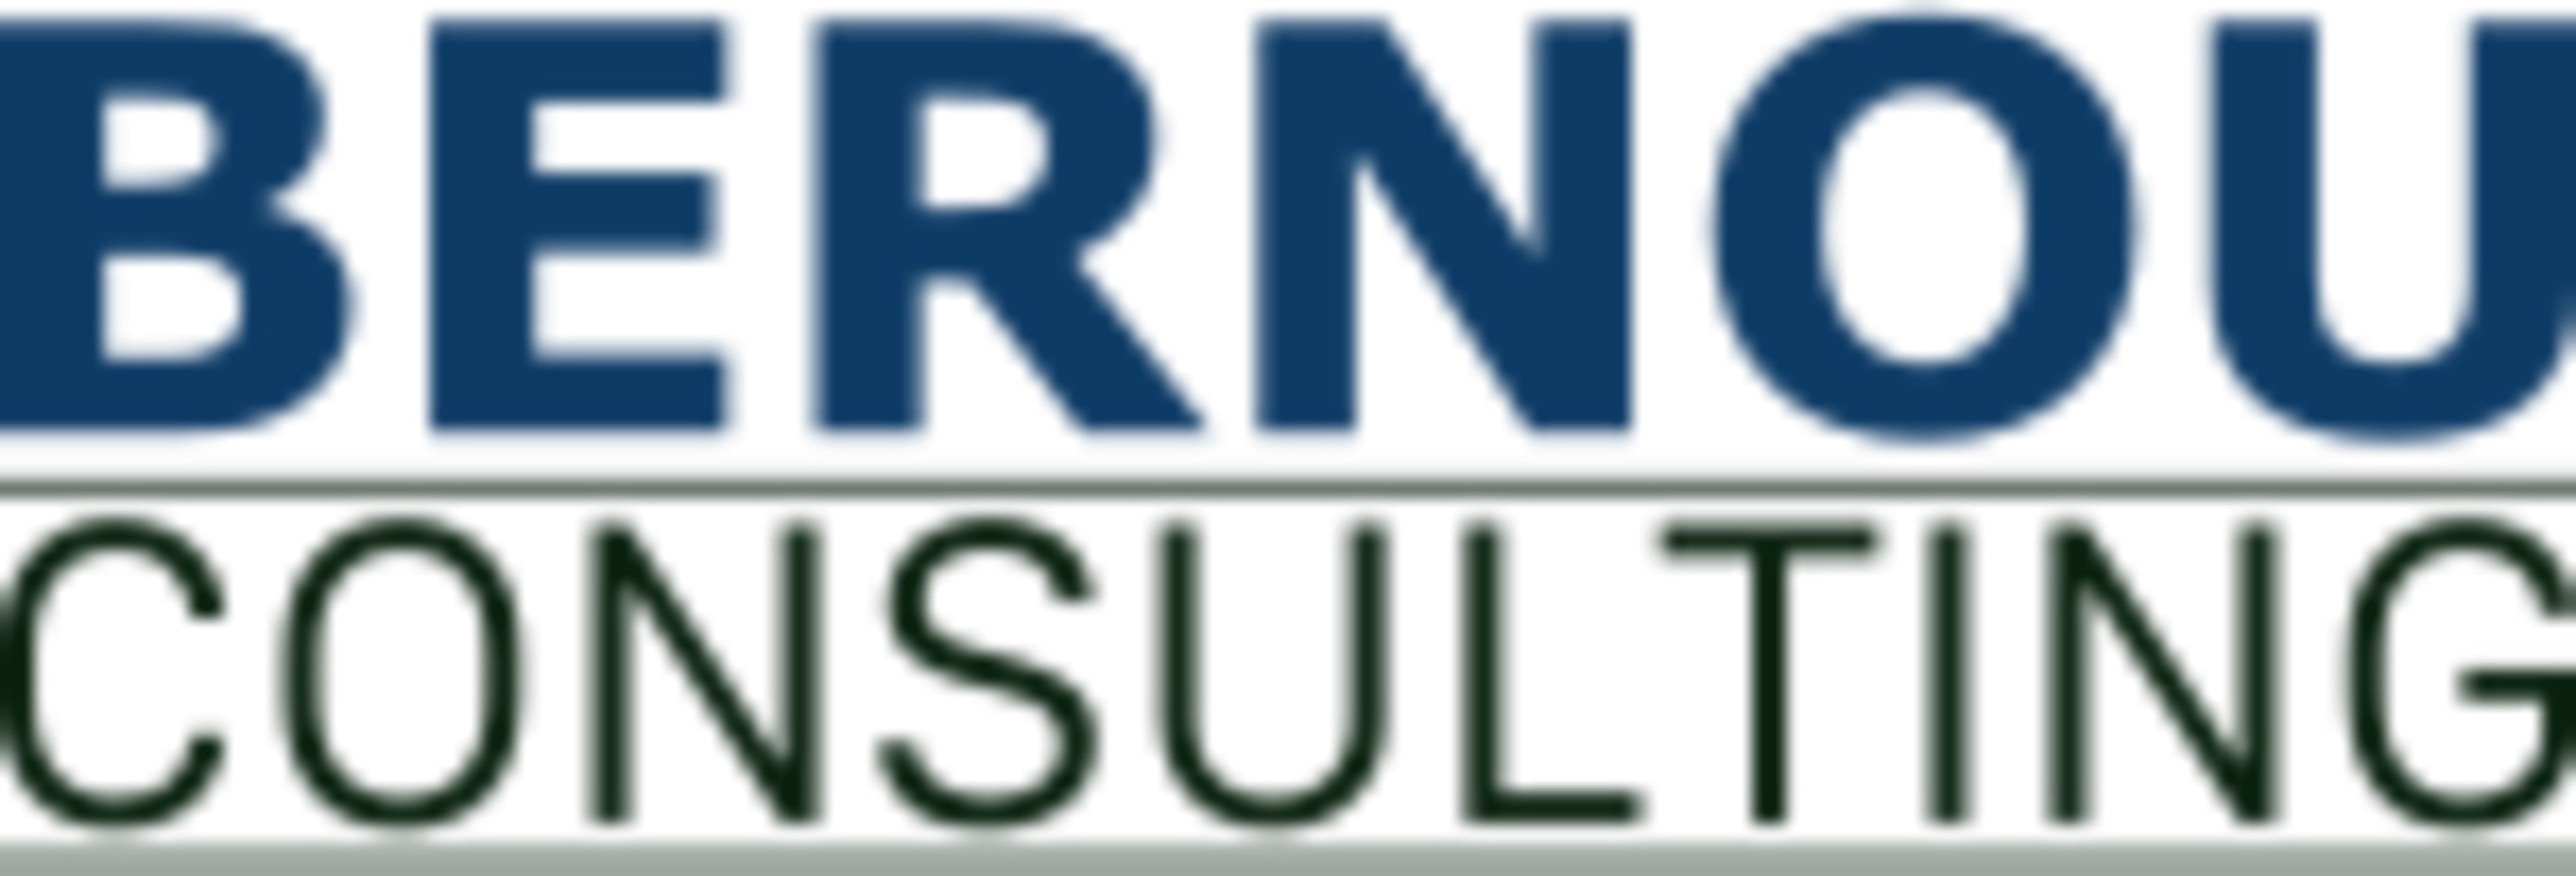 Bernou Consulting - Your partner for eCommerce